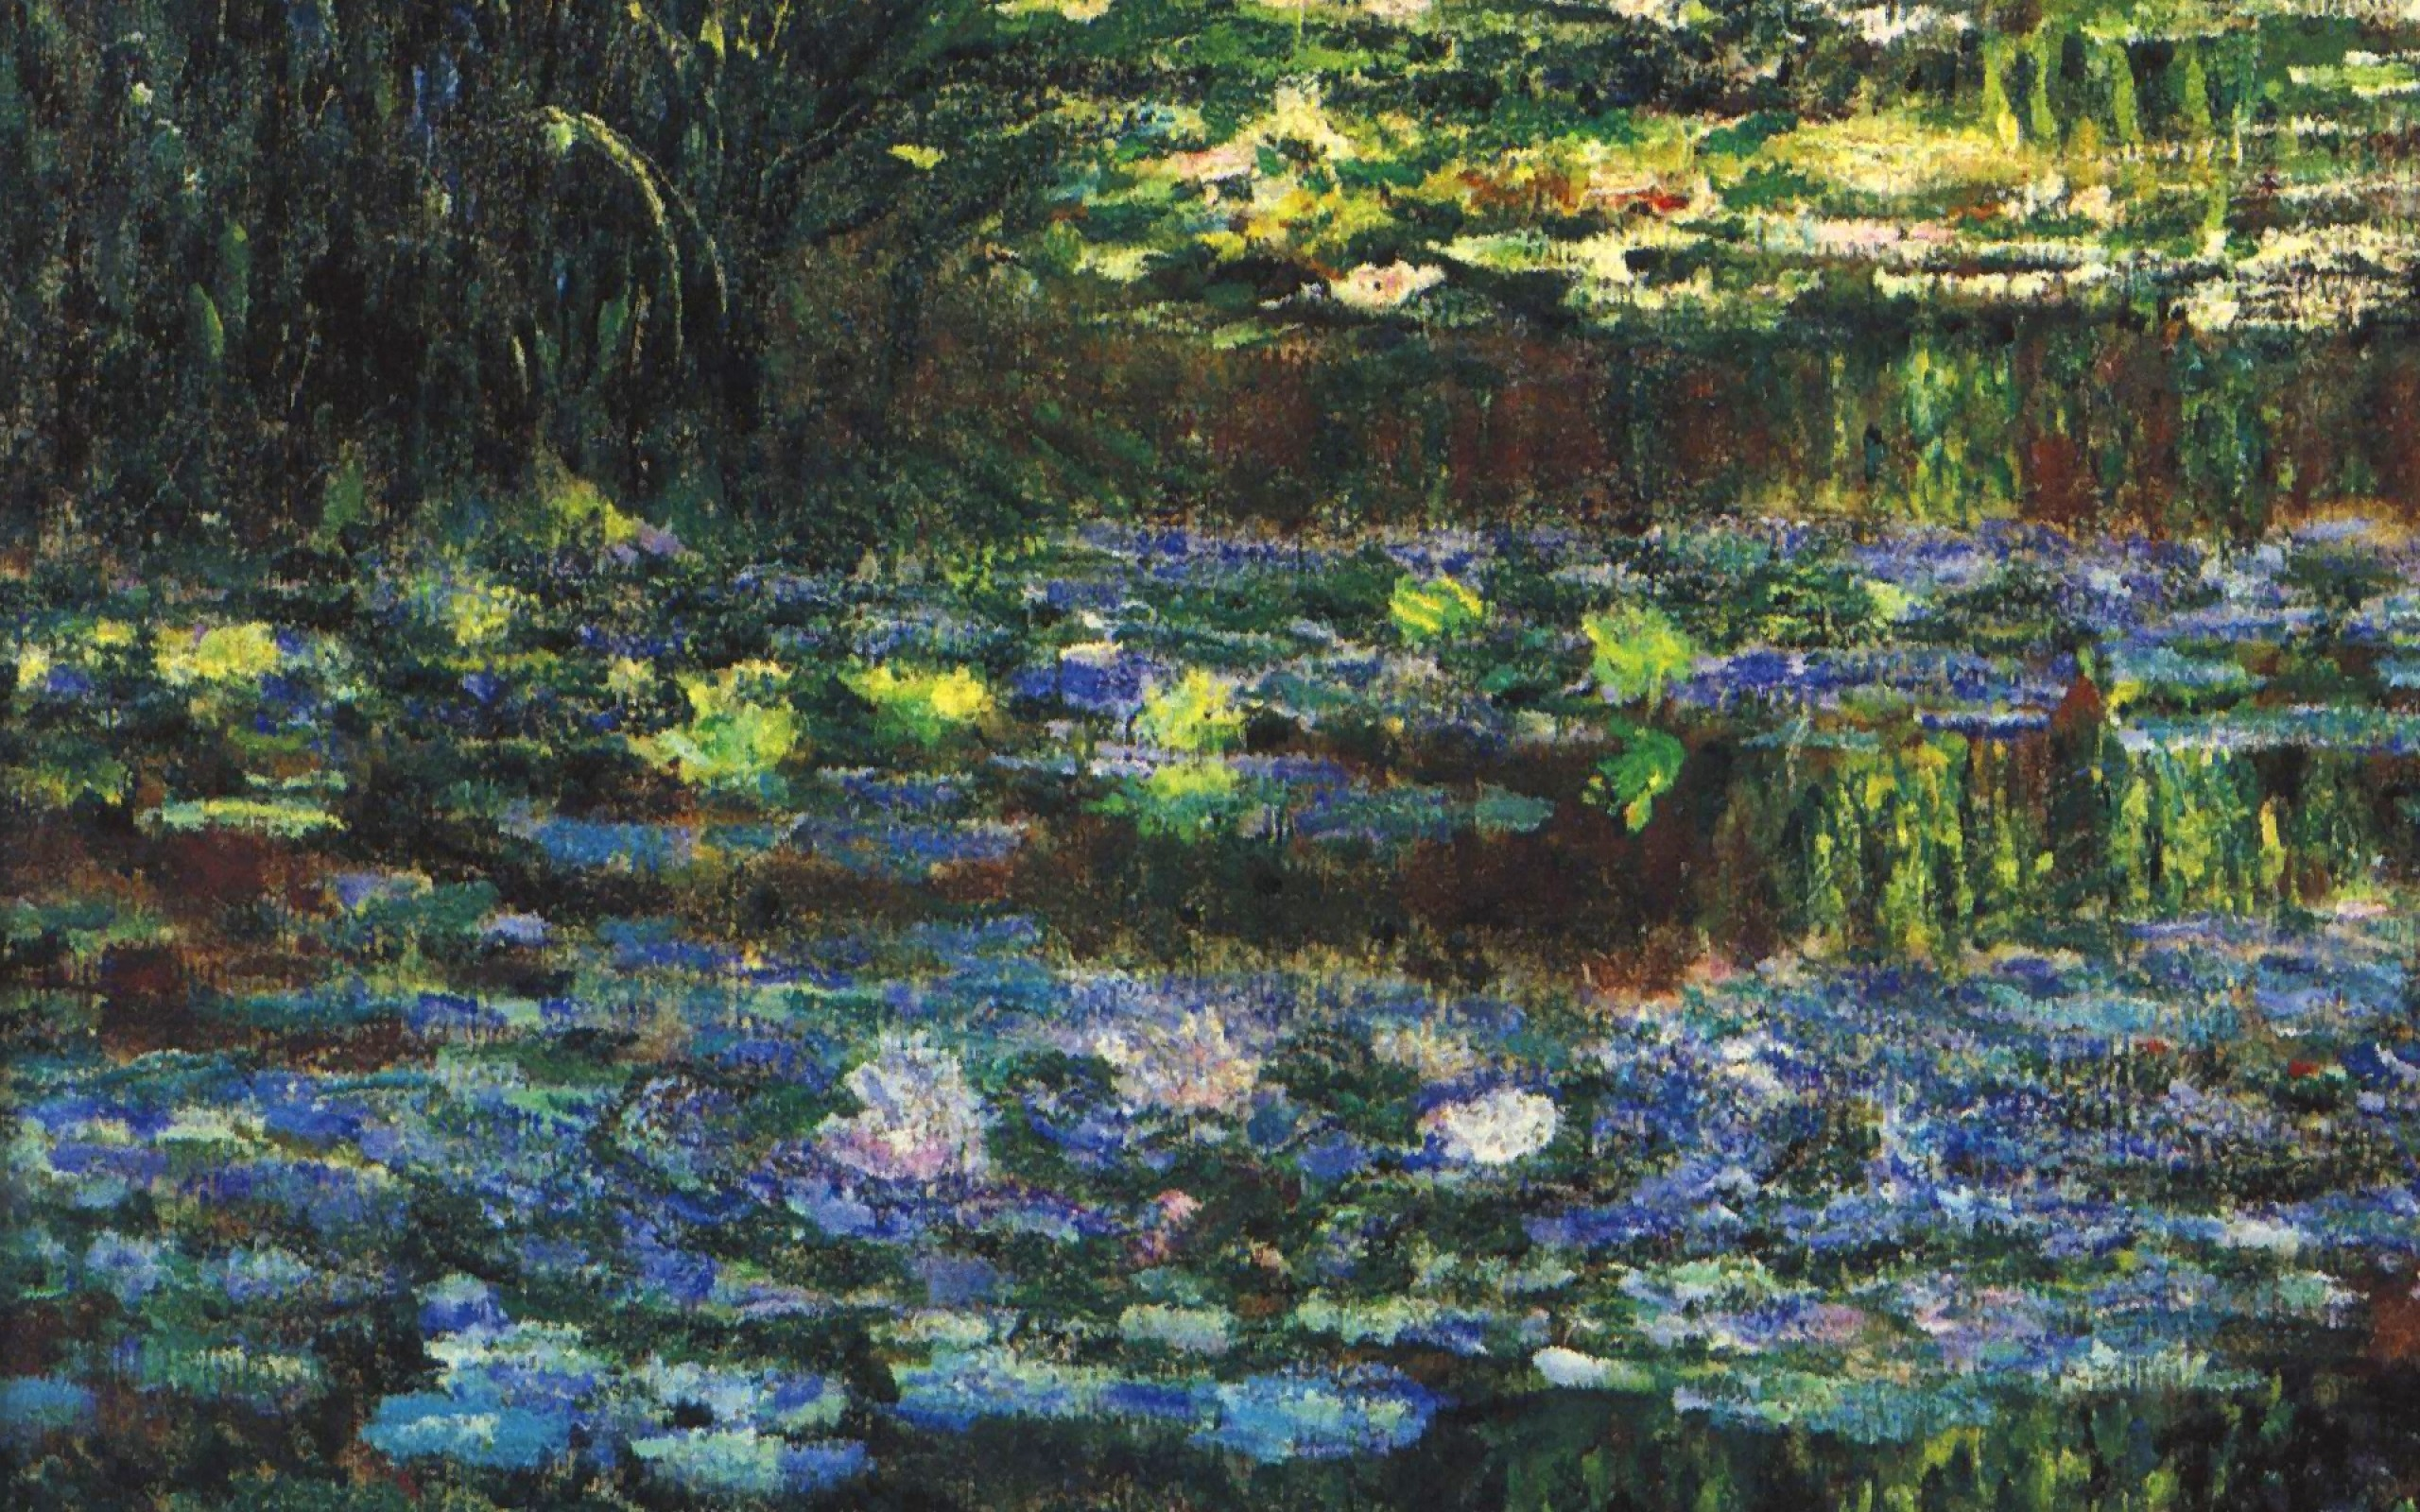 HD Monet Wallpaper 41 images